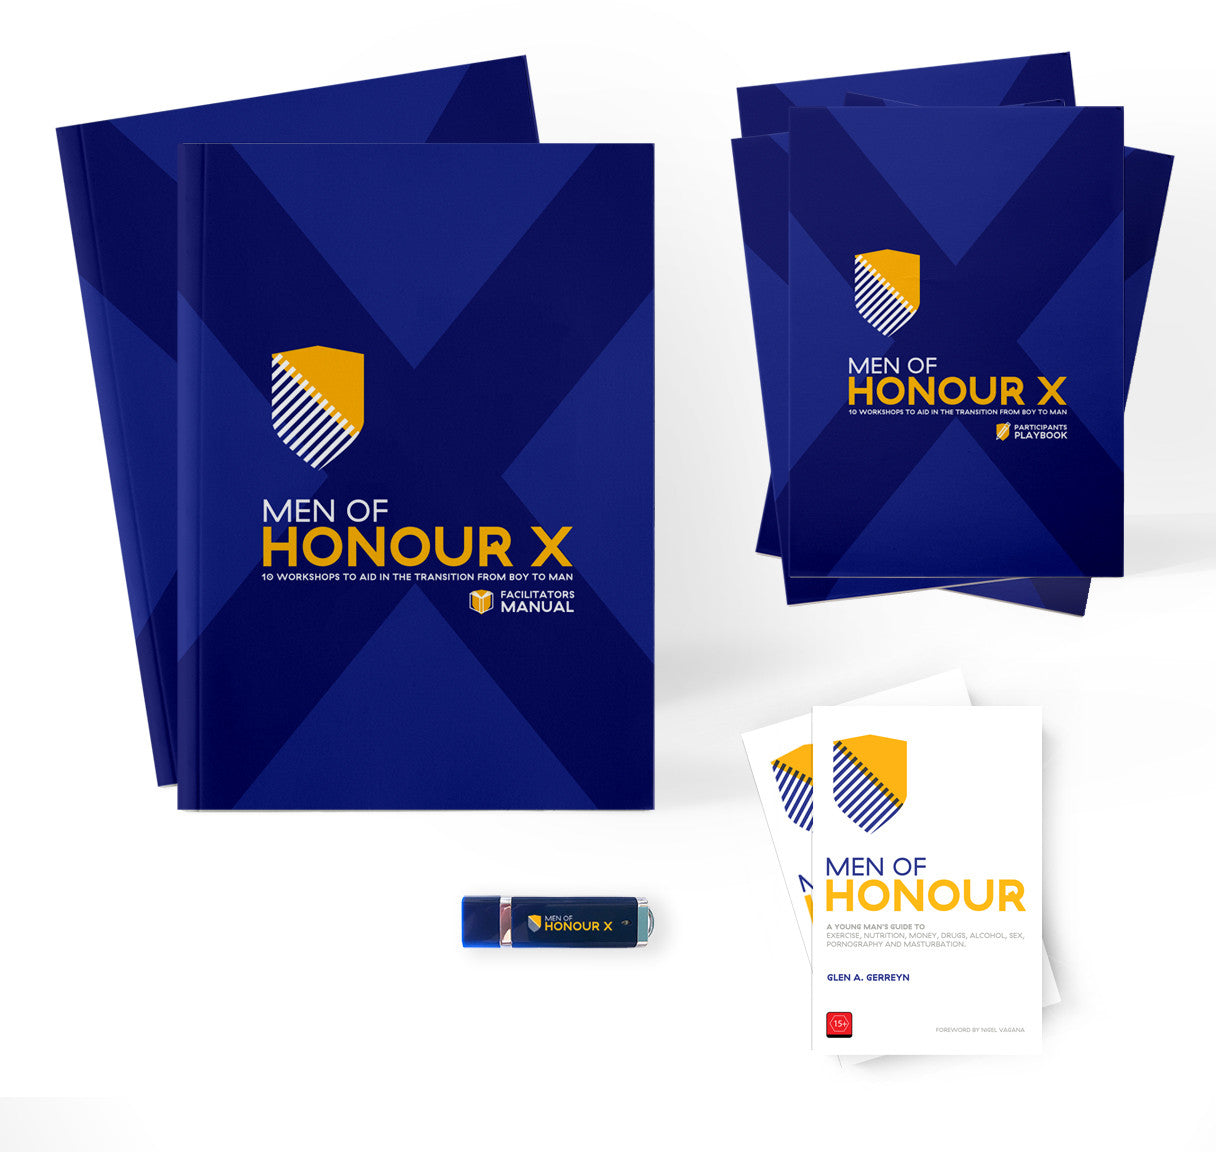 MEN OF HONOUR X   -   STARTER PACK:    10 Workshops to Aid in the Transition from Boy to Man.